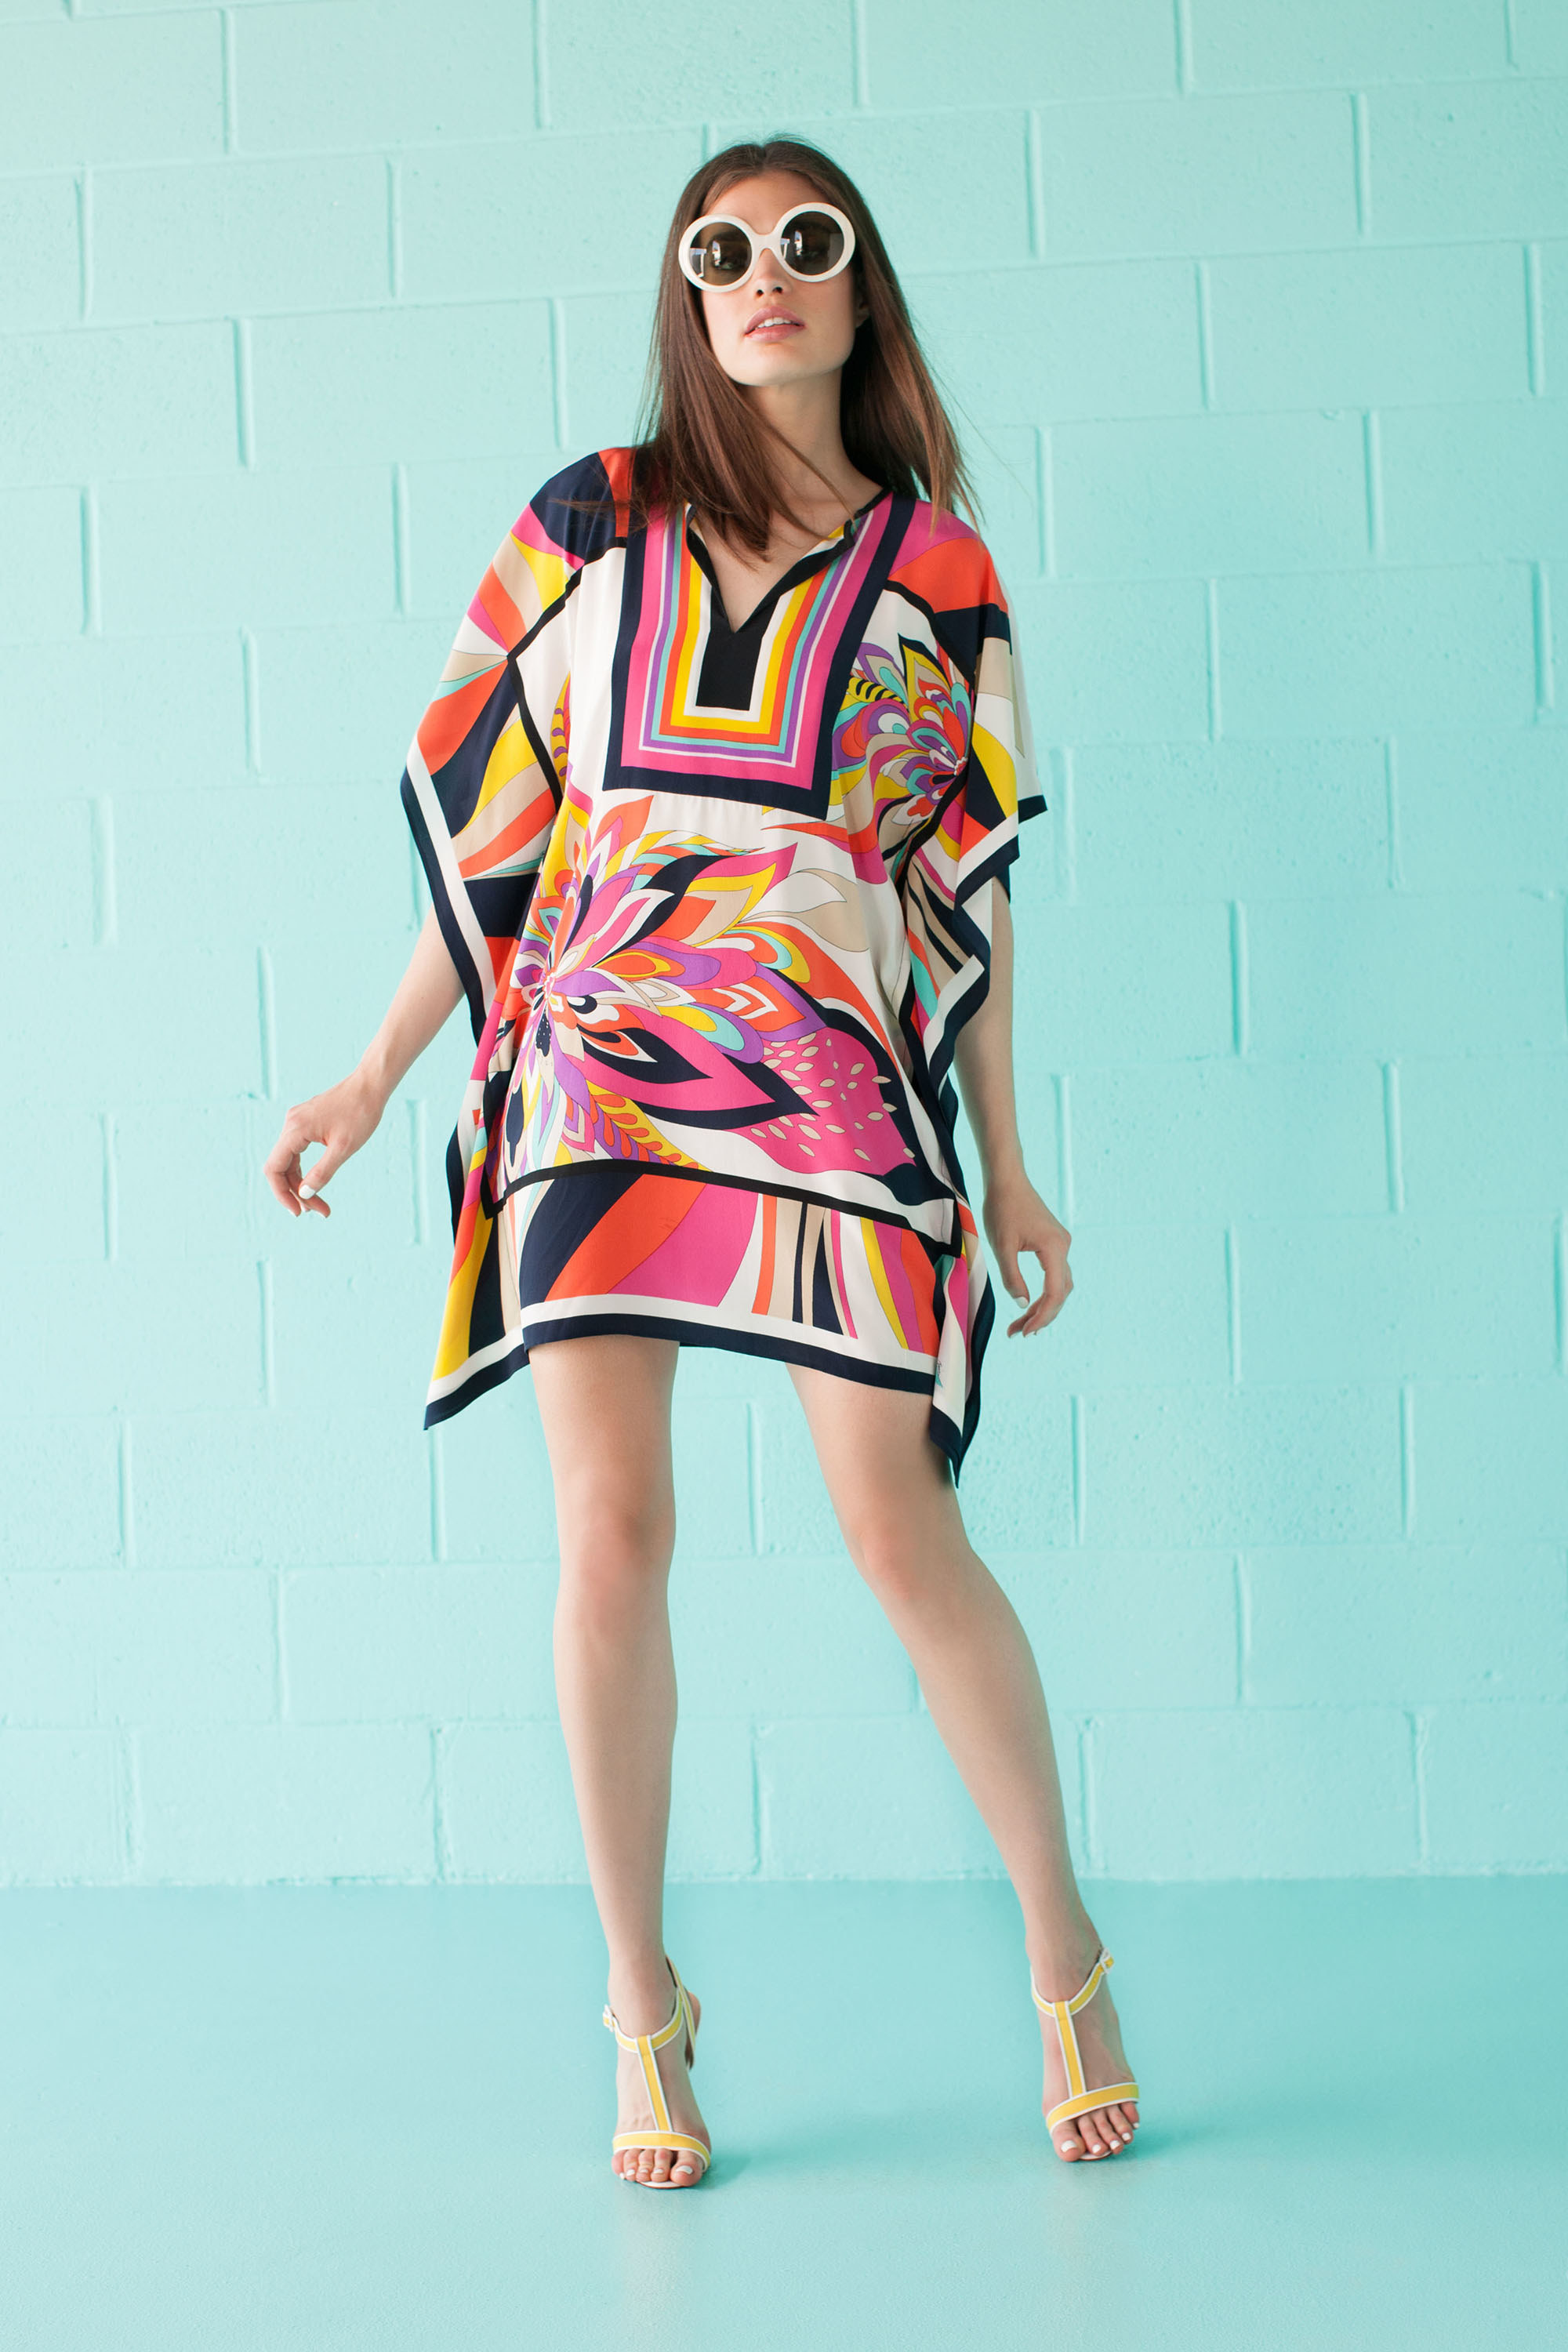 Trina Turk    Wow, this look is so retro and fun! The big, round sunglasses and dainty, yellow heels are perfect with the slightly over-sized look of the dress.